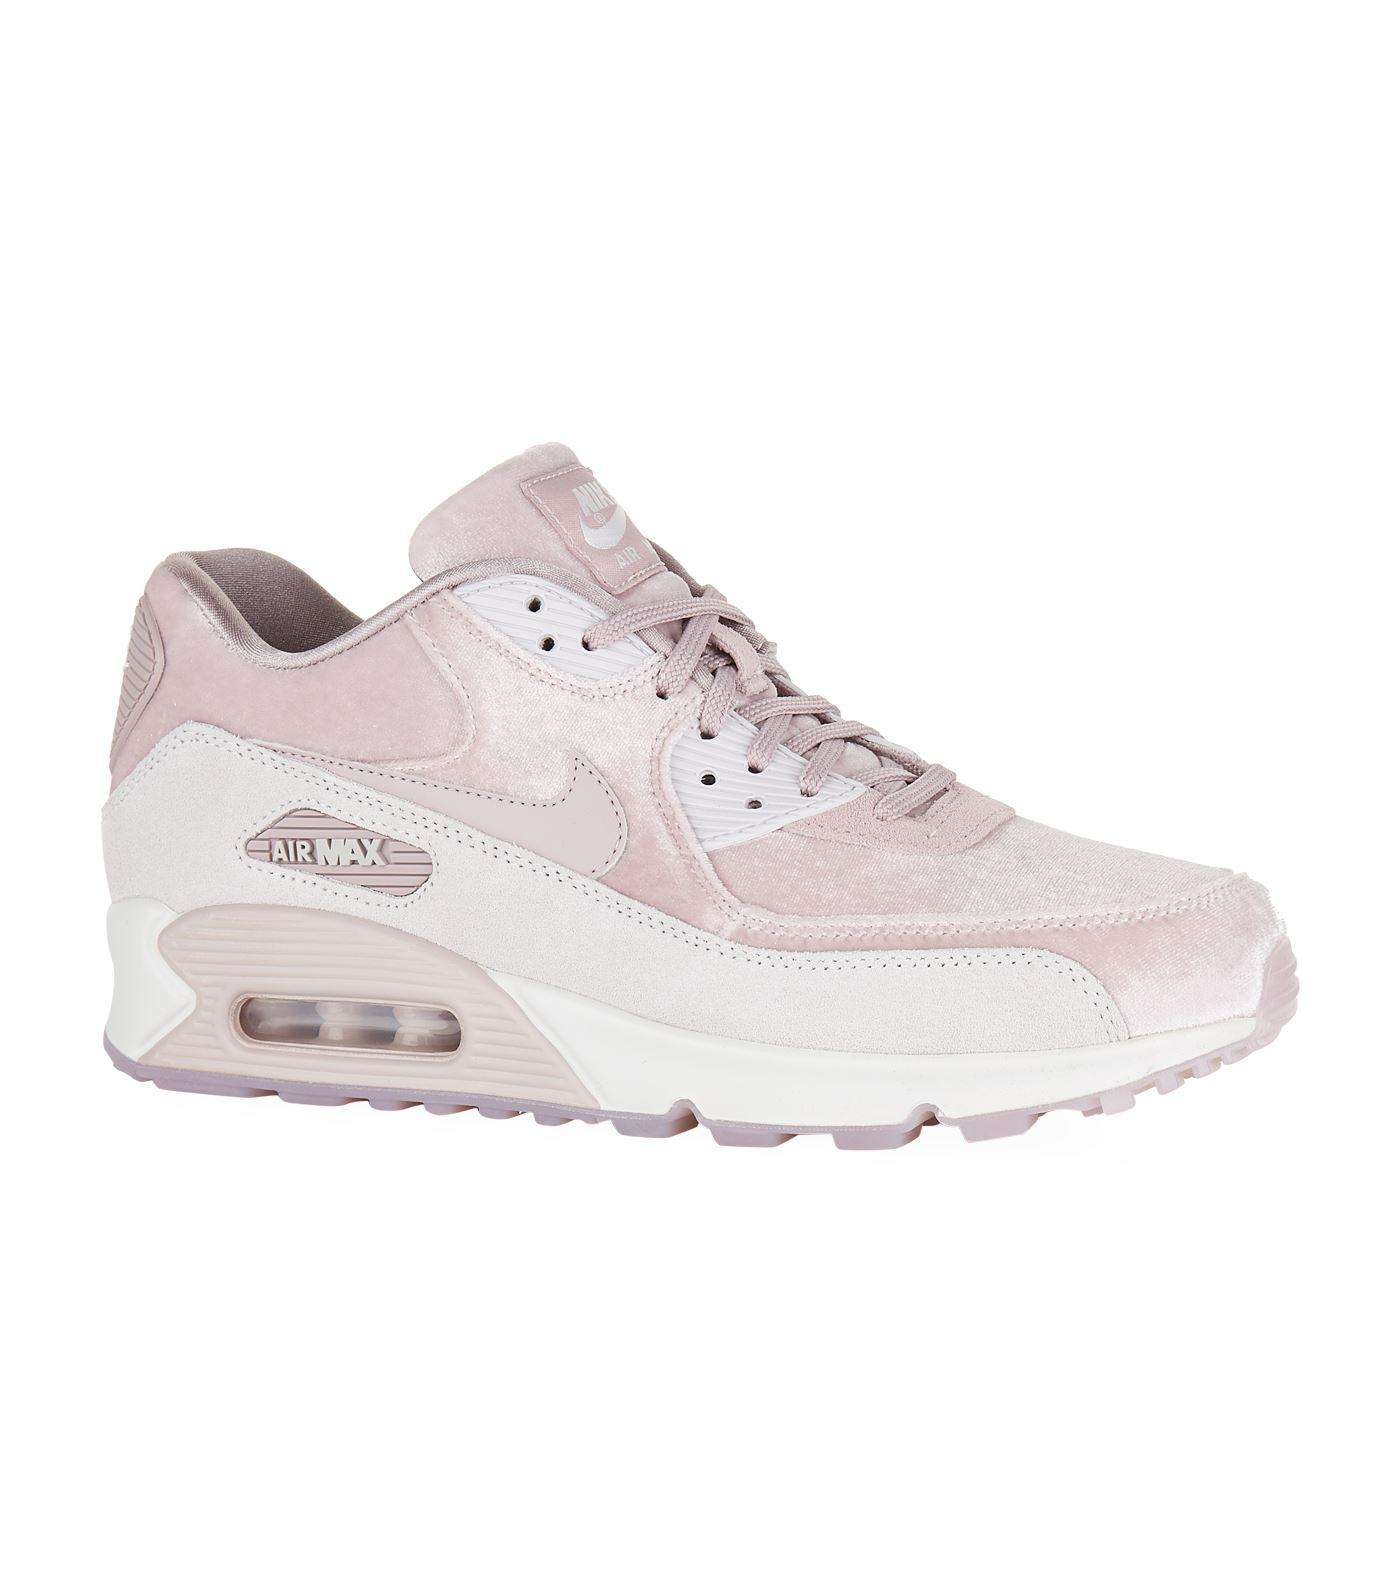 online store a666f 45f12 Previously sold at Harrods · Women s Nike Air Max Women s Nike Air  Nike  Air Max 90 LX Pink Women 898512-600 03 ...